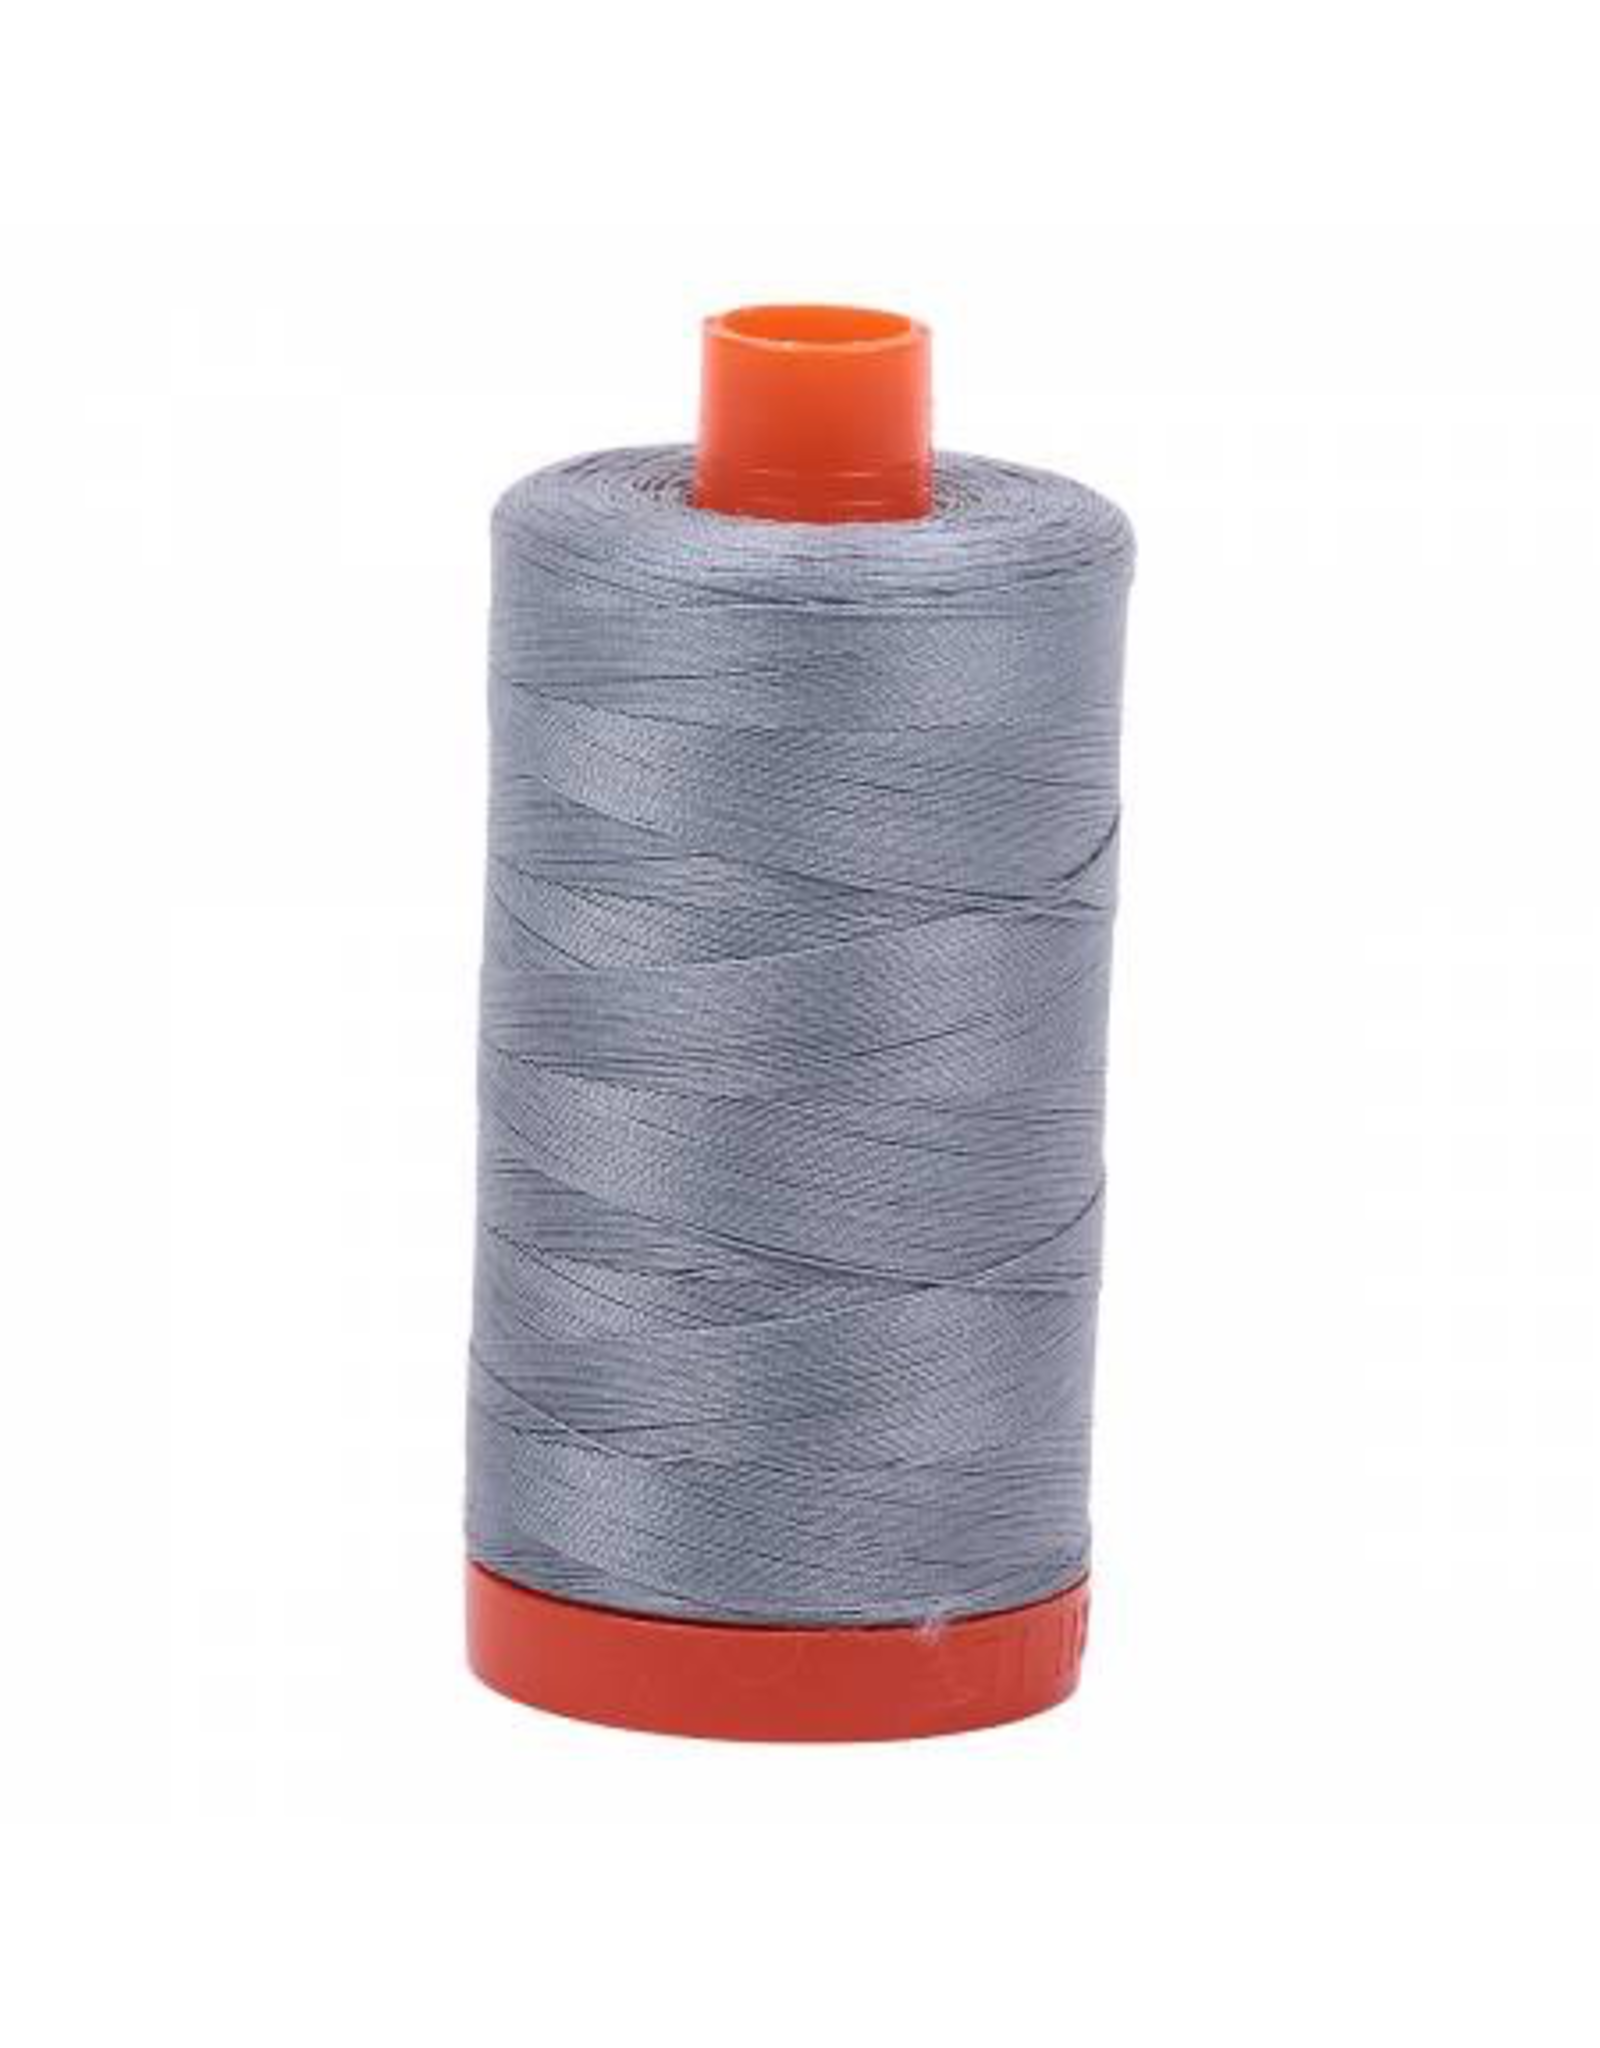 Aurifil Cotton Thread 50 wt 1422 yards Light Blue Grey